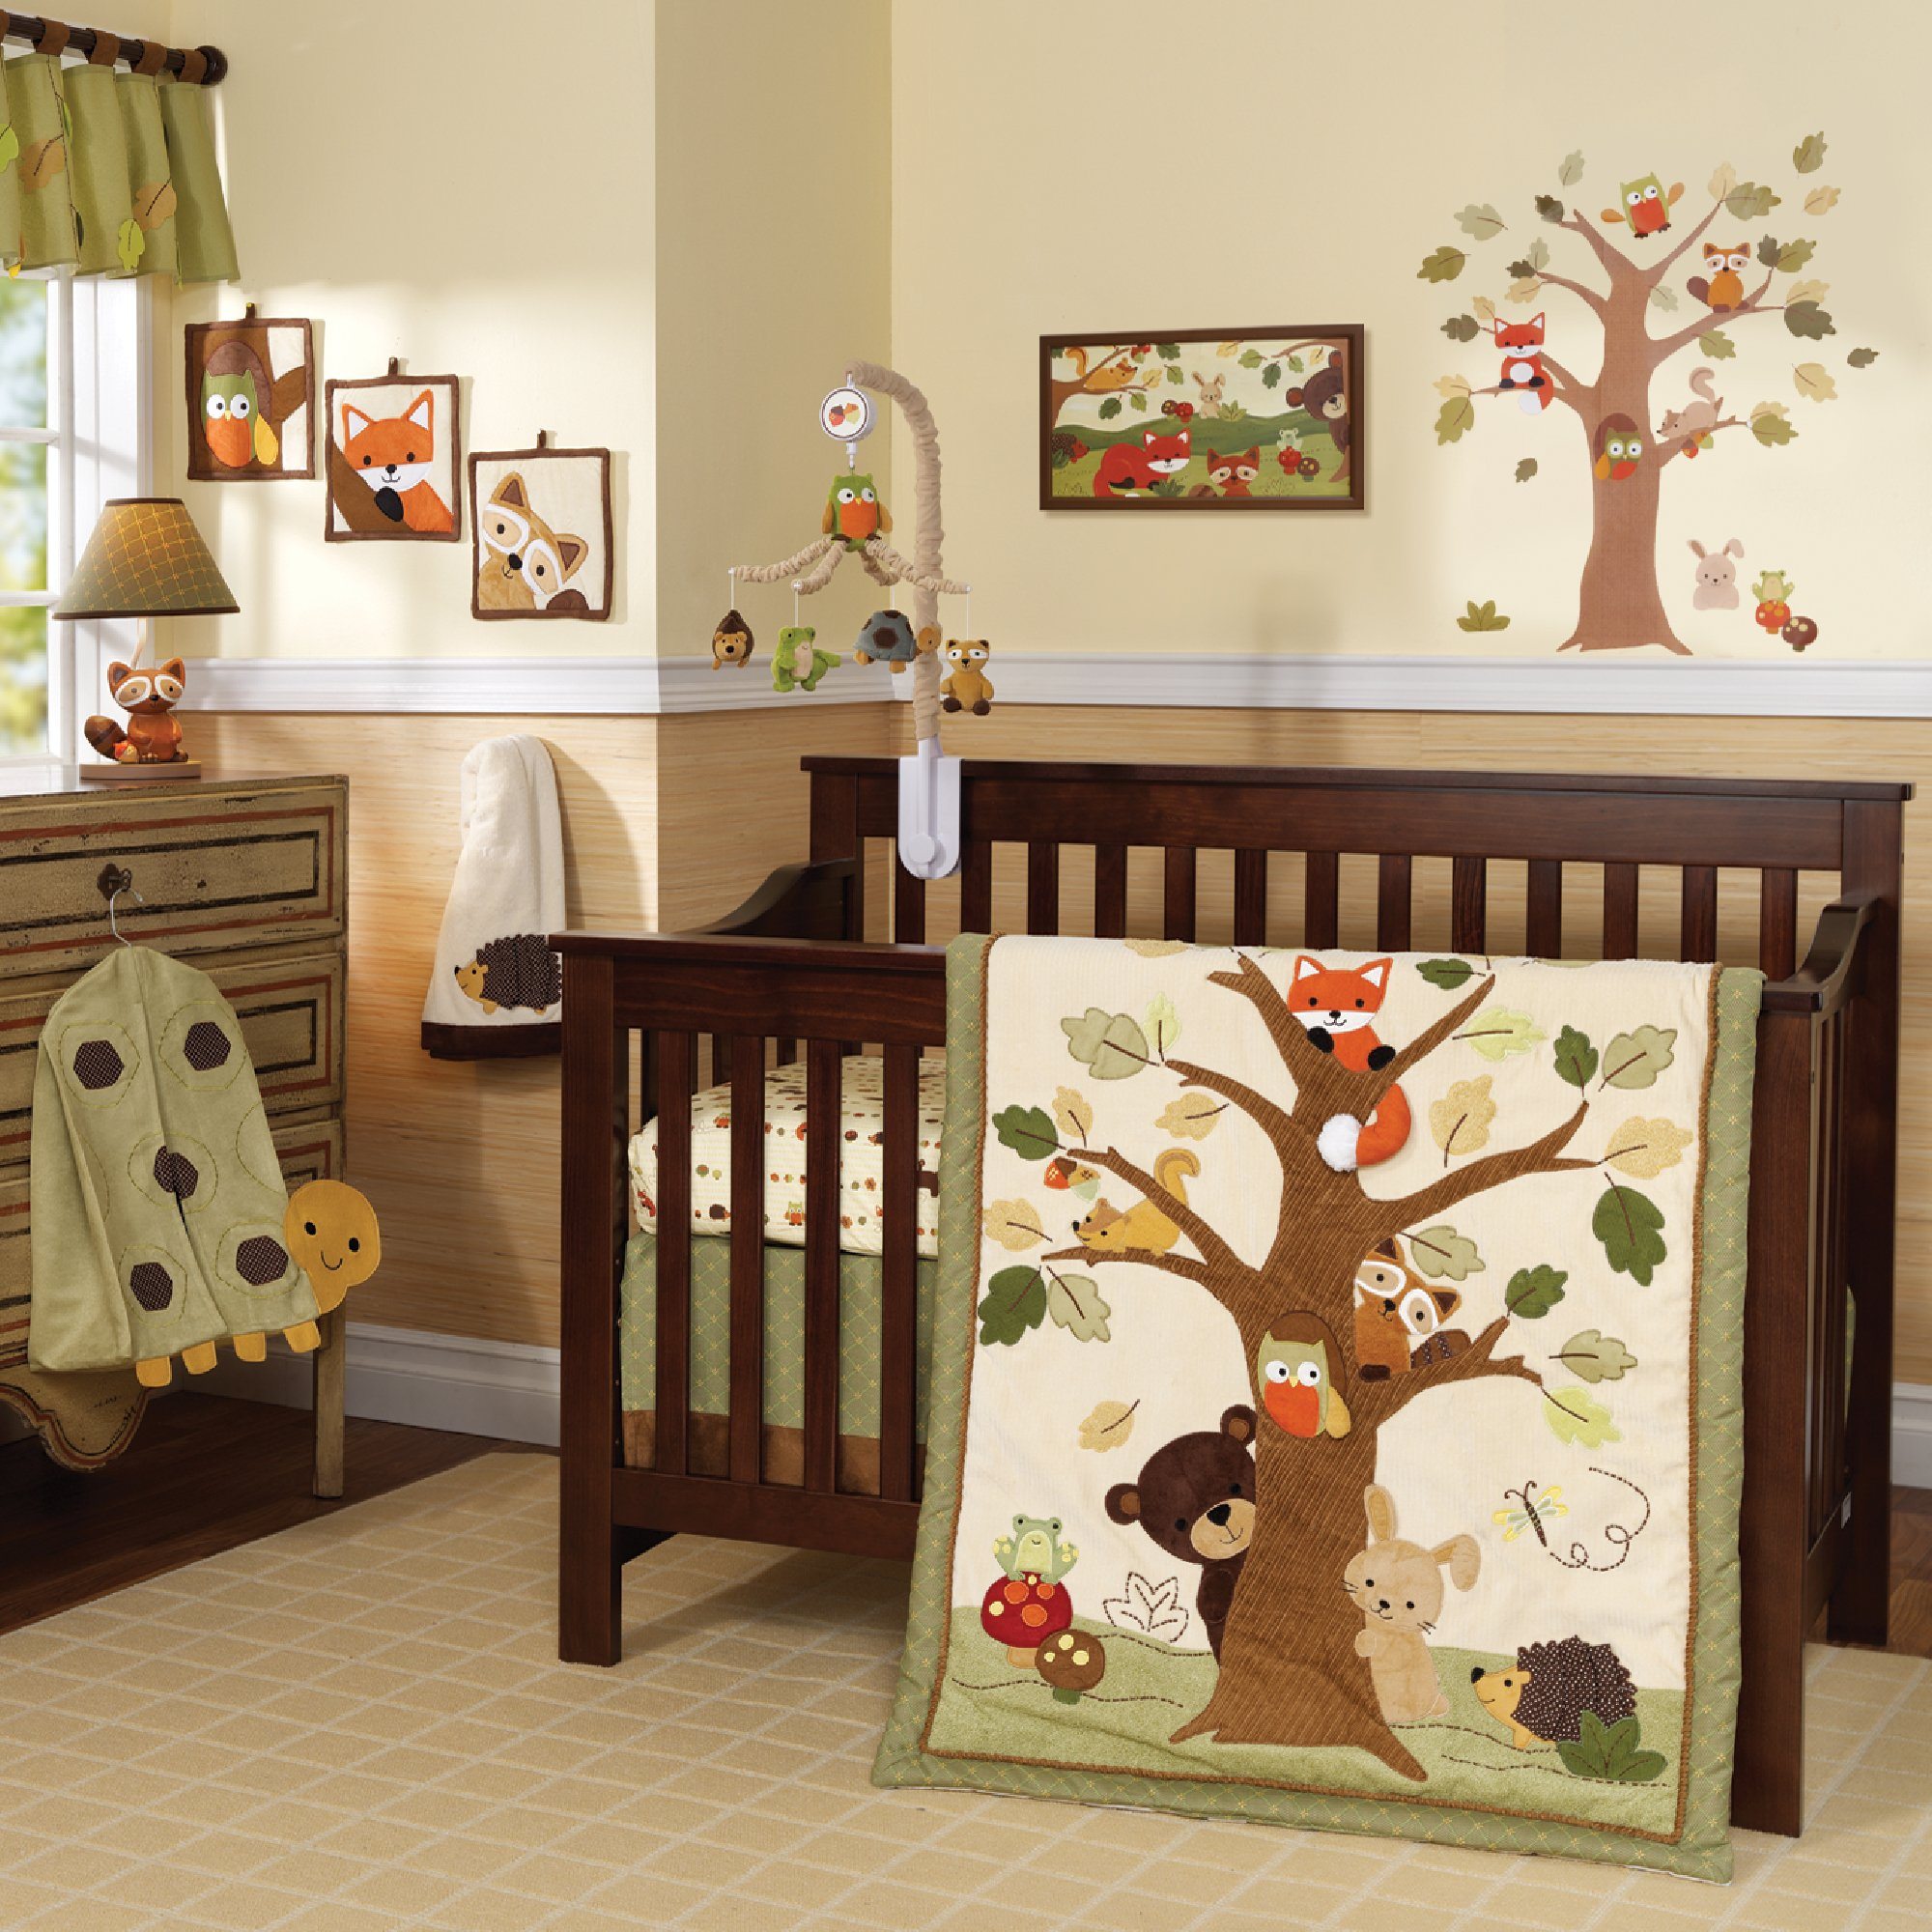 Lambs & Ivy Echo 9-Piece Crib Bedding Set - Brown, Beige, Green, Animals, Tree